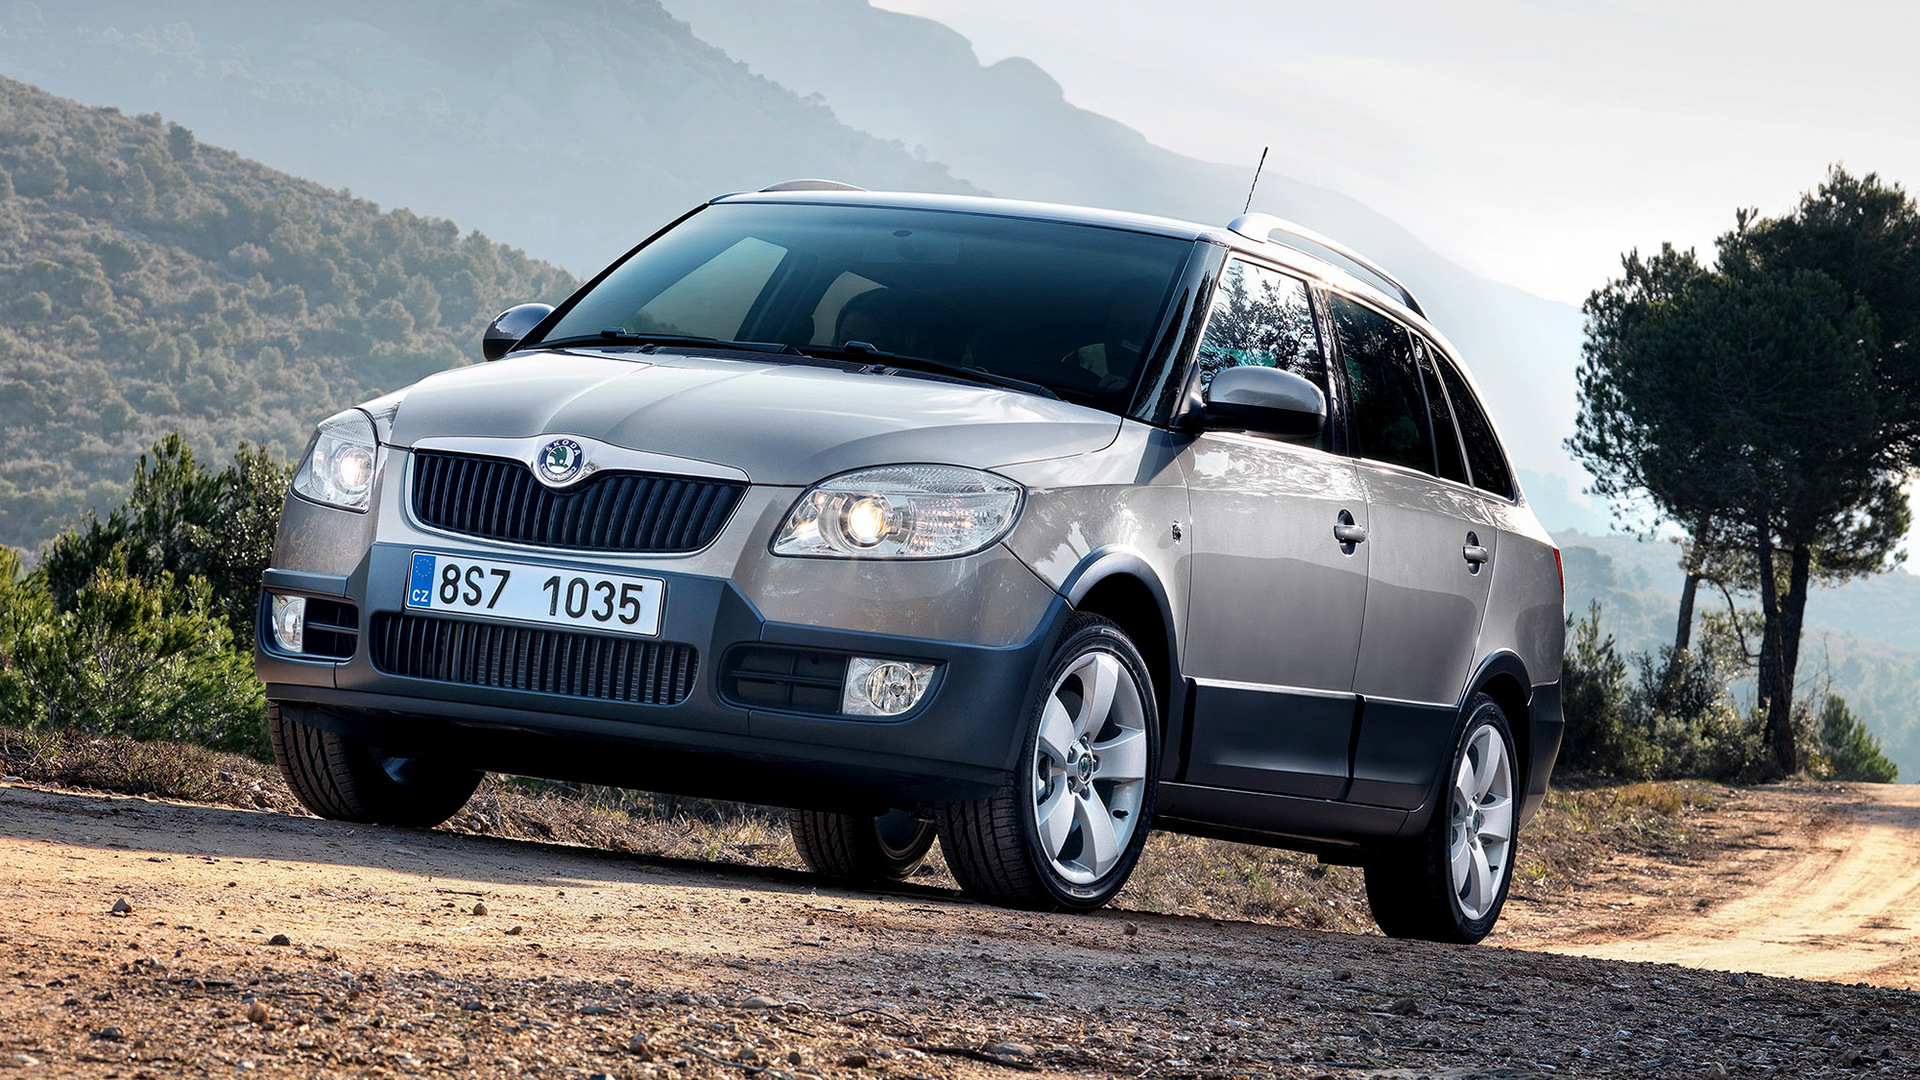 2009 skoda fabia scout combi wallpapers and hd images. Black Bedroom Furniture Sets. Home Design Ideas